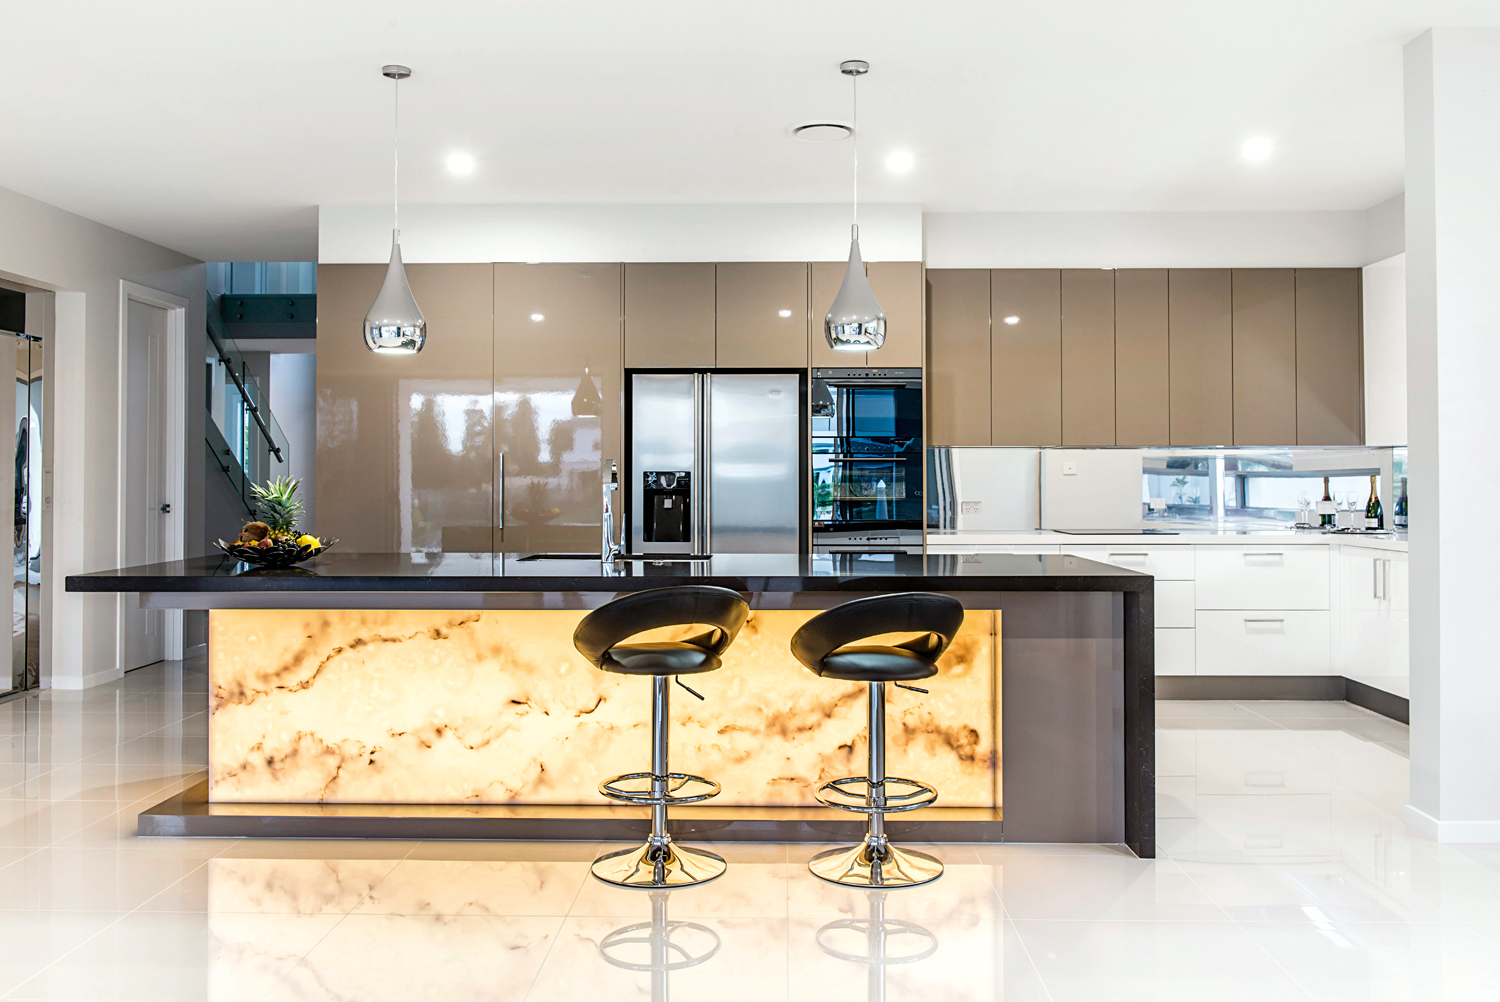 Modern kitchen: innovative, warm and striking